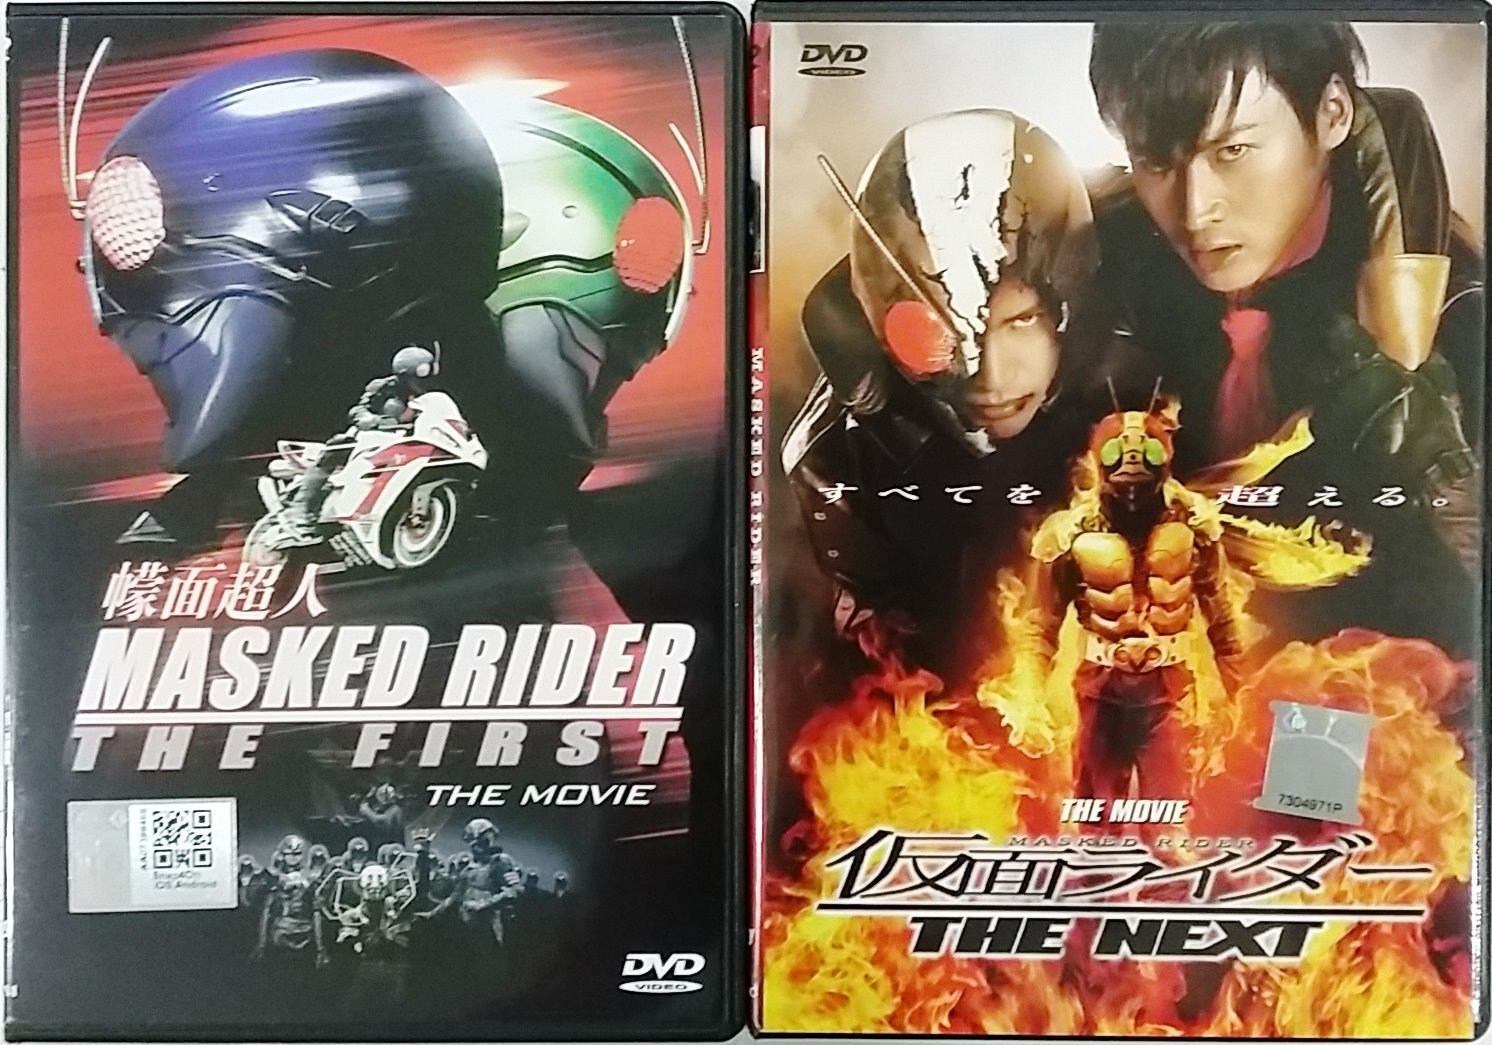 DVD Kamen Masked Rider Movie The First English Sub + The Movie English Audio